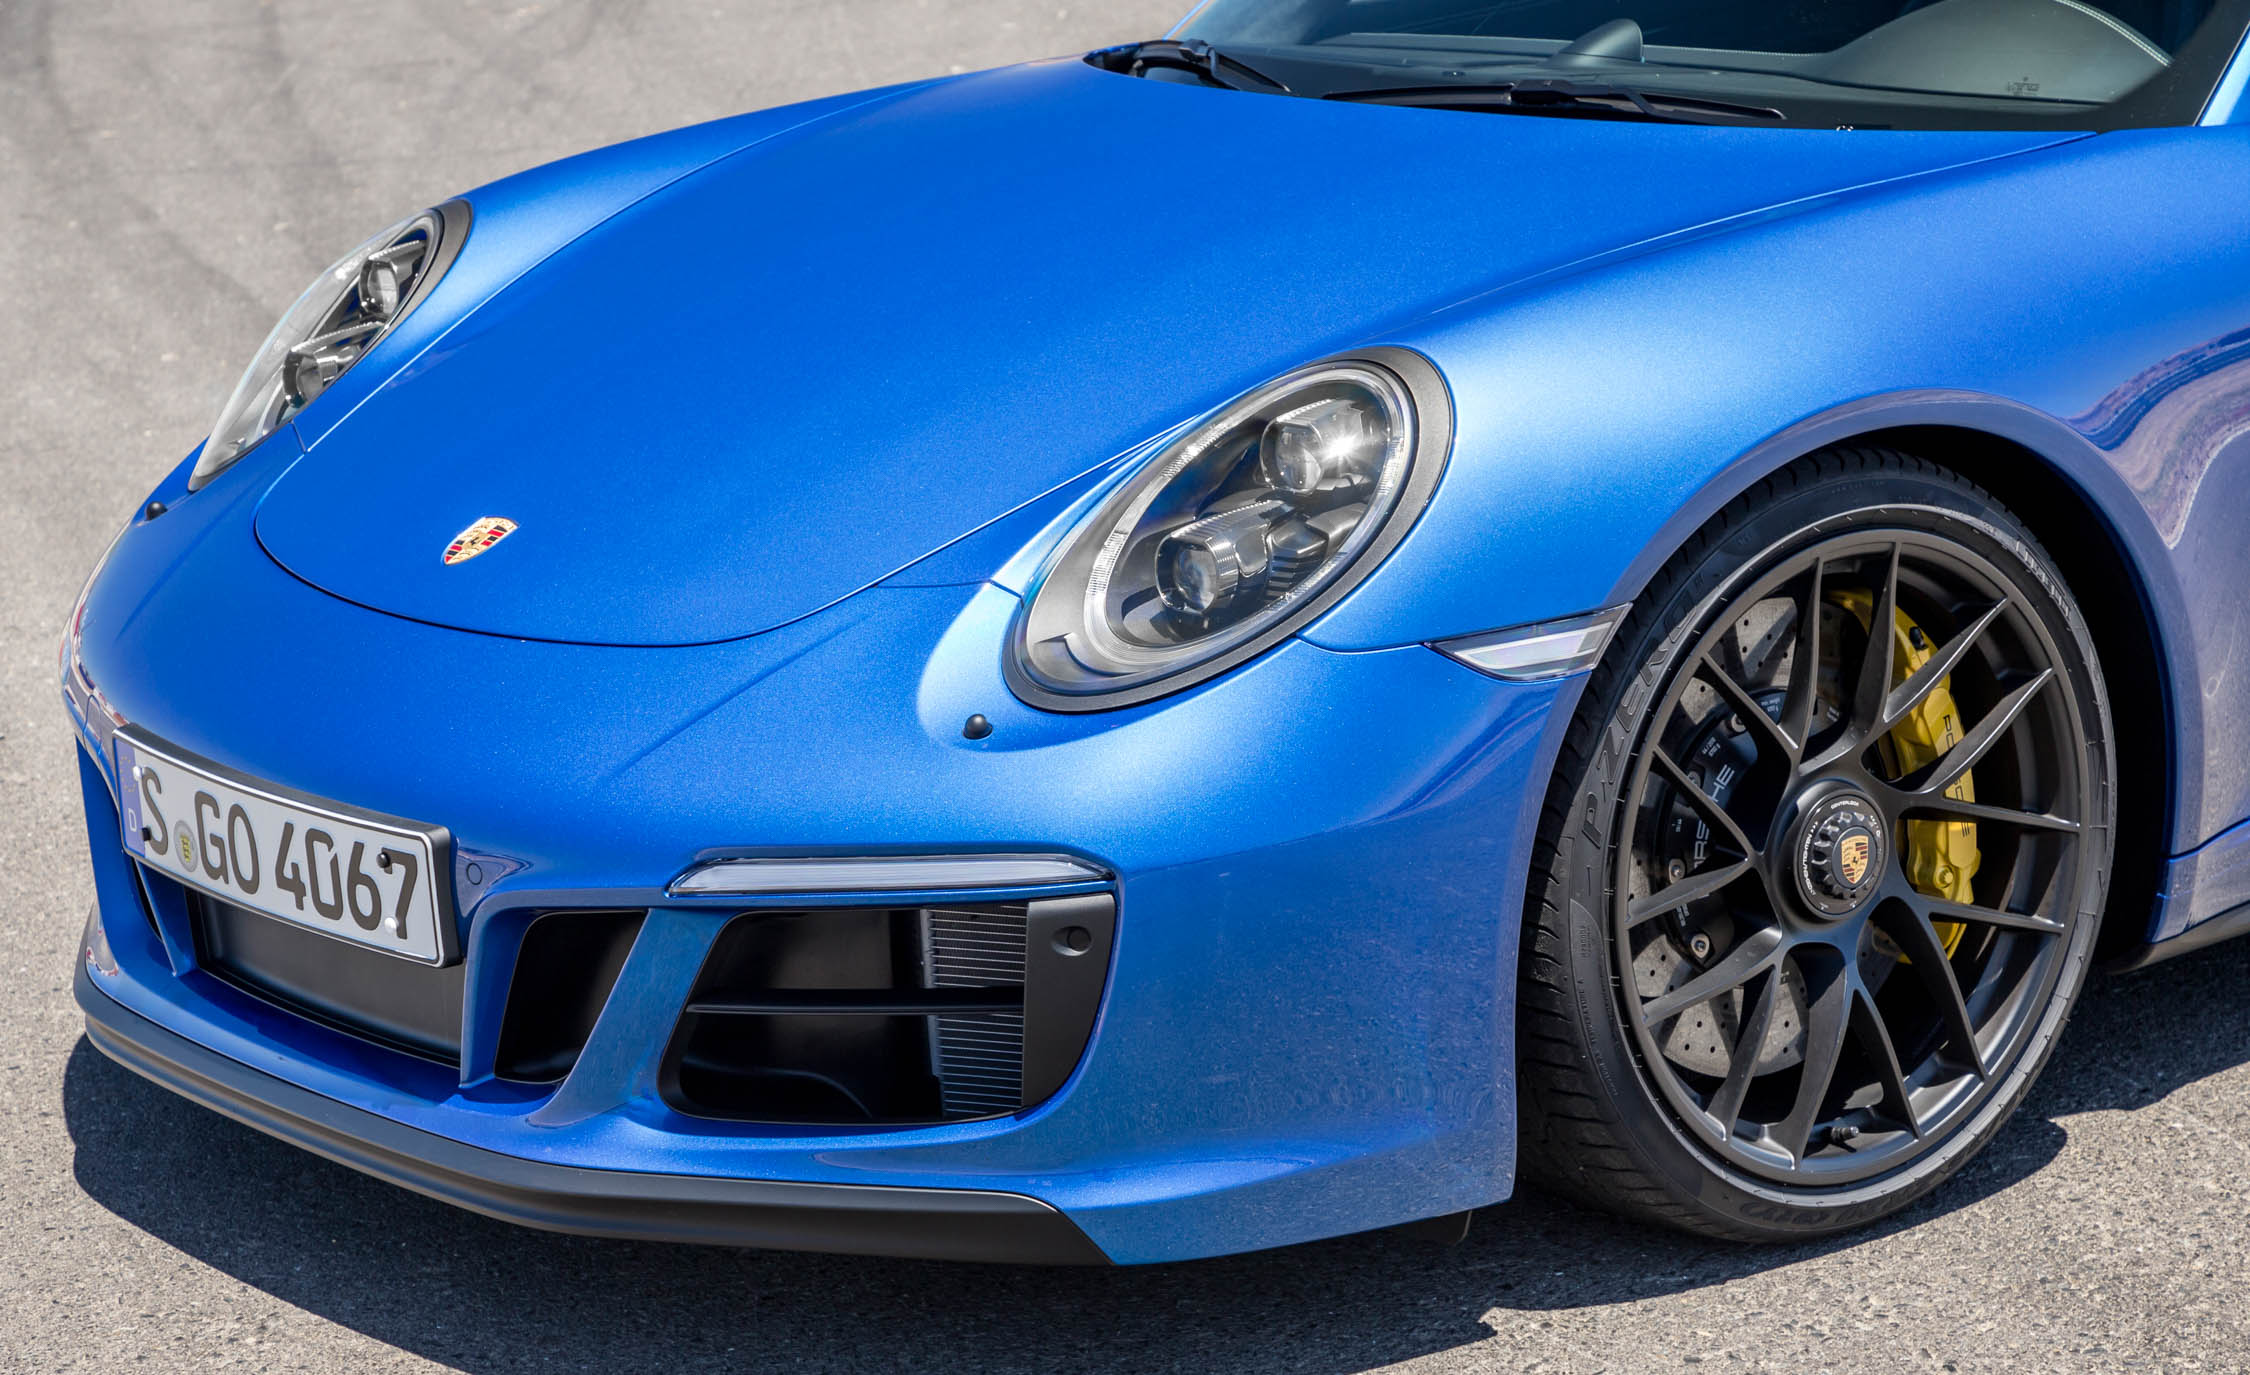 2017 Porsche 911 Carrera 4 GTS Coupe Exterior View Front Bumper Profile (Photo 20 of 97)